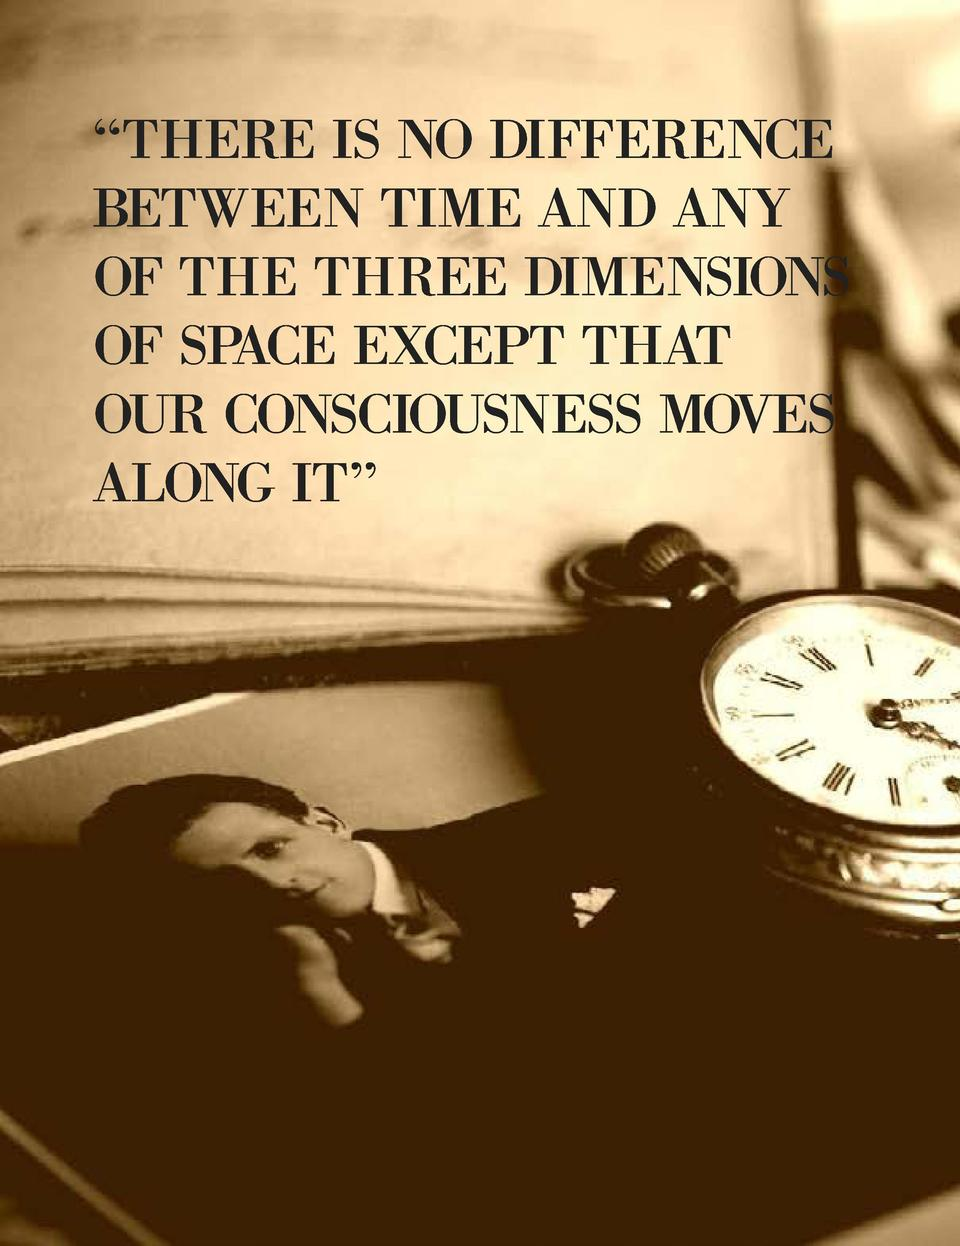 THERE IS NO DIFFERENCE BETWEEN TIME AND ANY OF THE THREE DIMENSIONS OF SPACE EXCEPT THAT OUR CONSCIOUSNESS MOVES ALONG ...